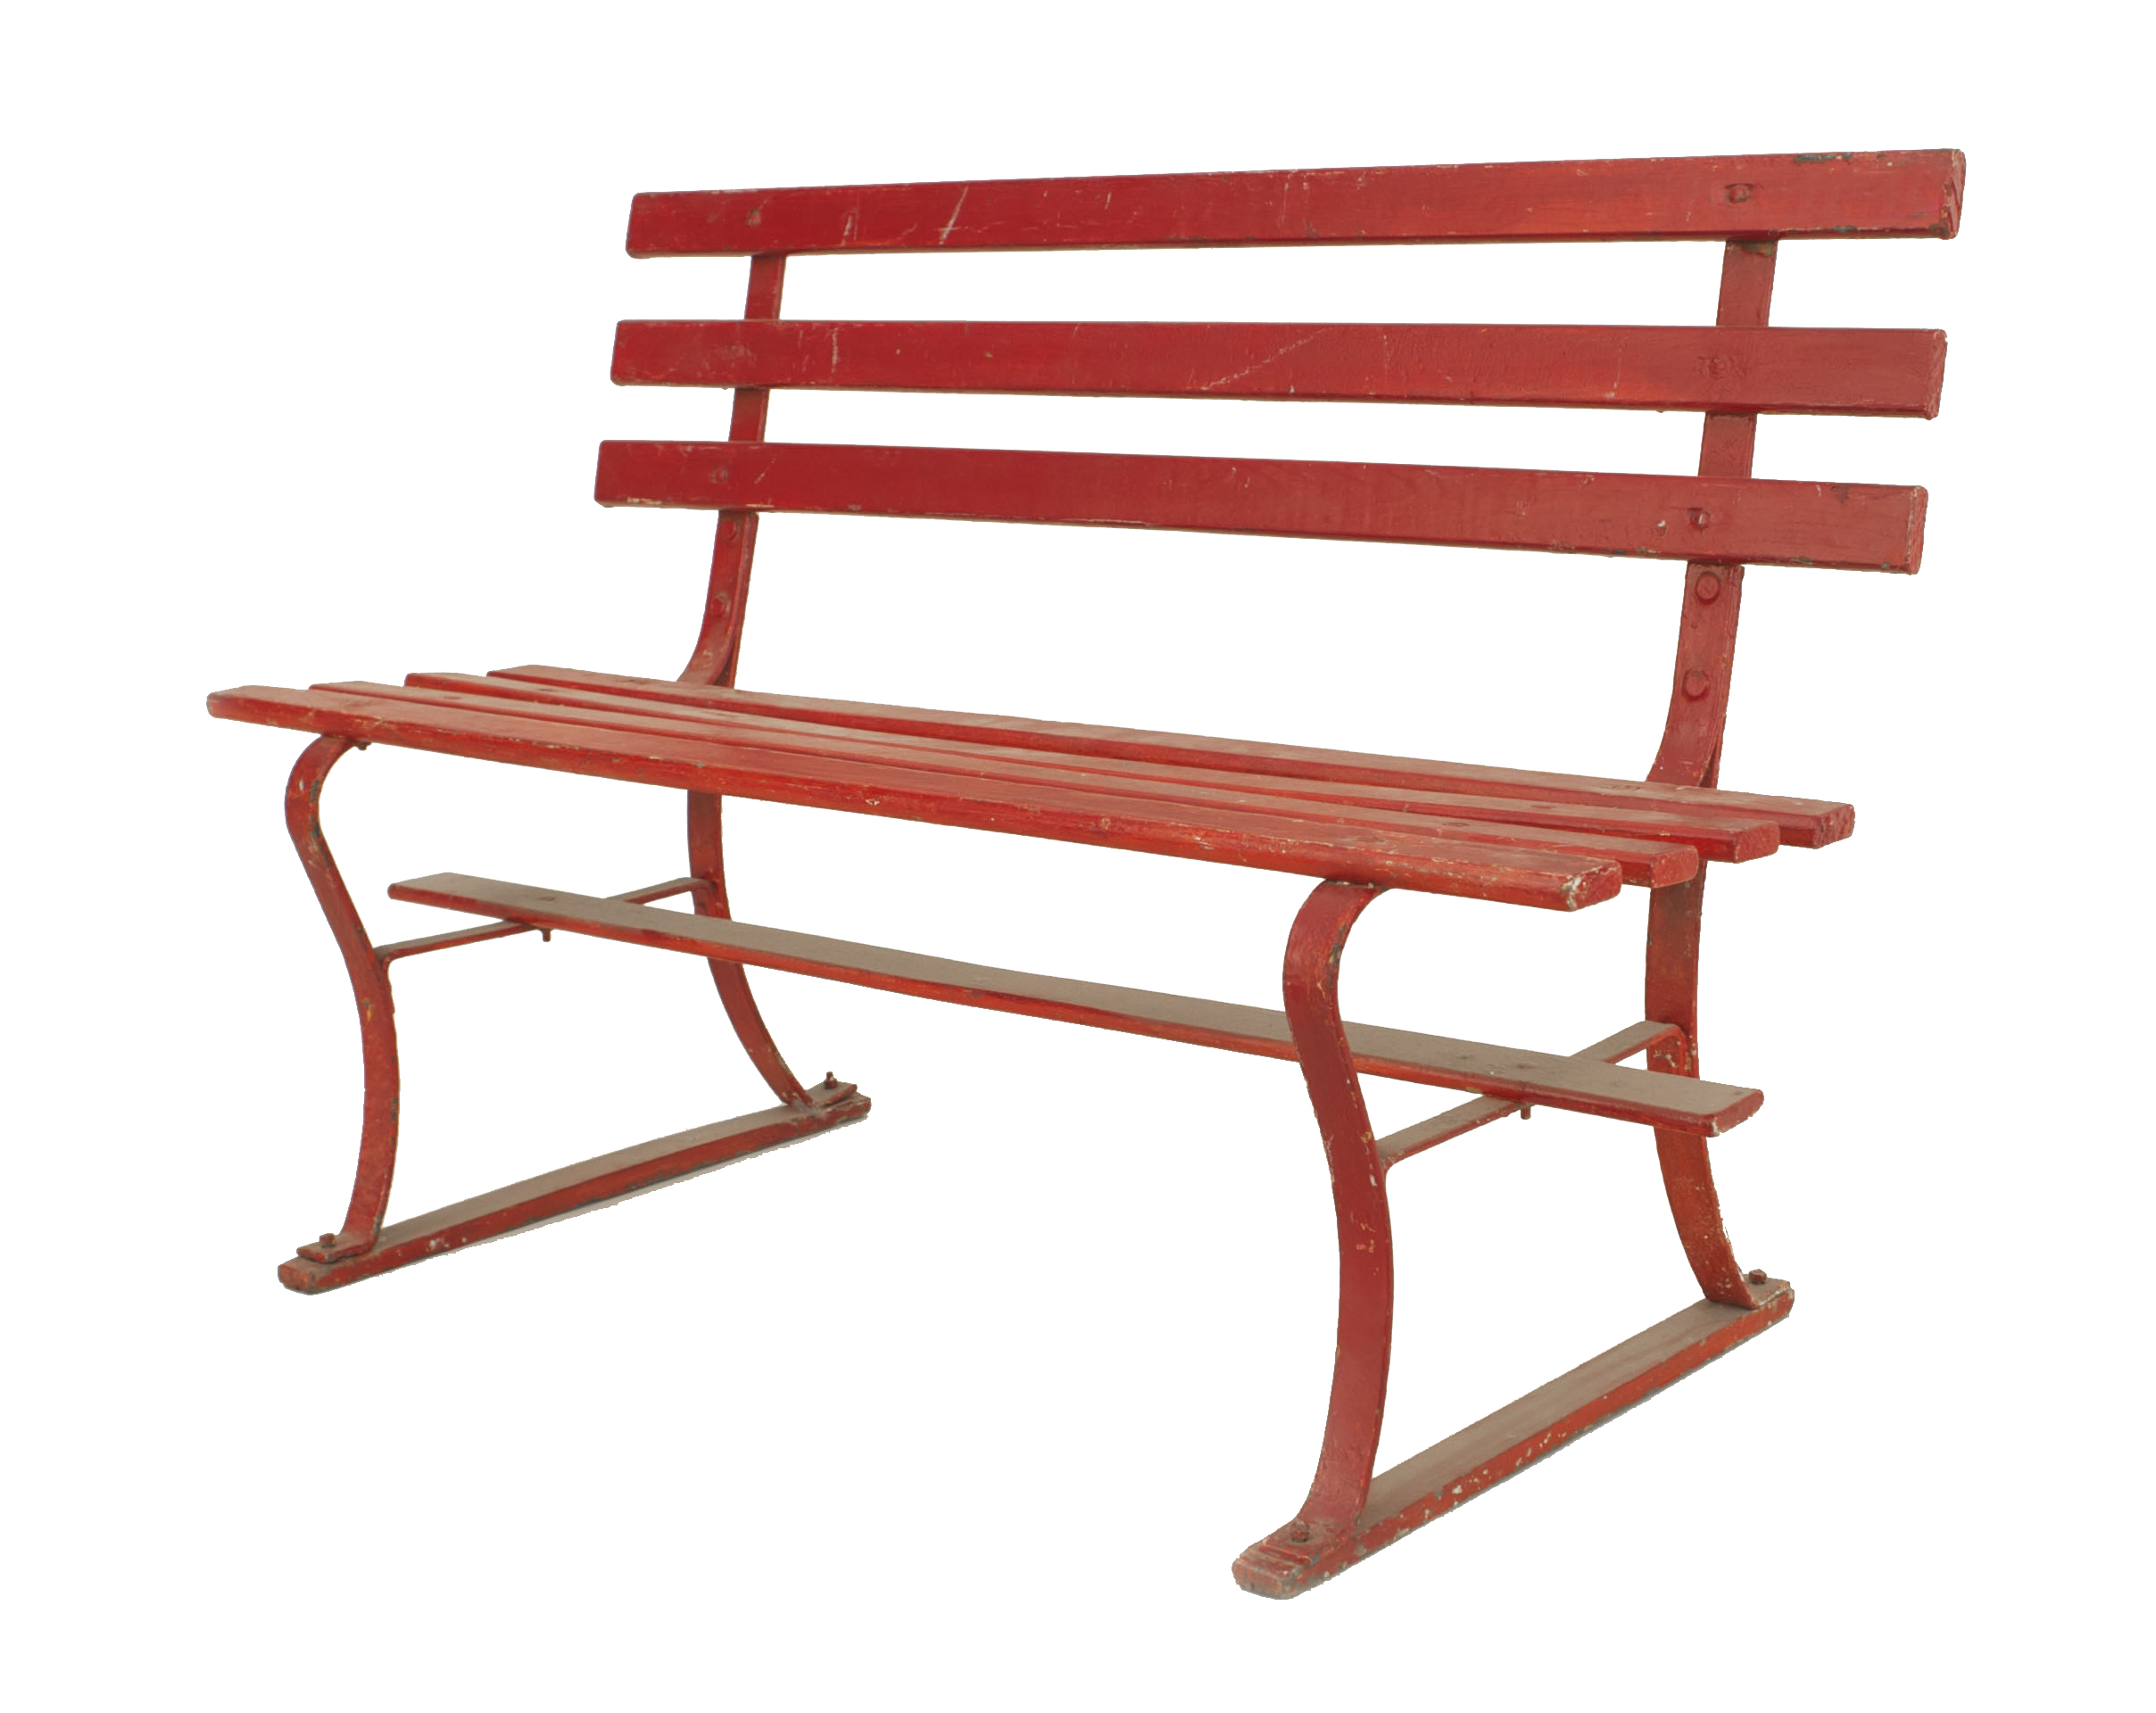 Groovy American Country Outdoor Red Bench Newel Machost Co Dining Chair Design Ideas Machostcouk